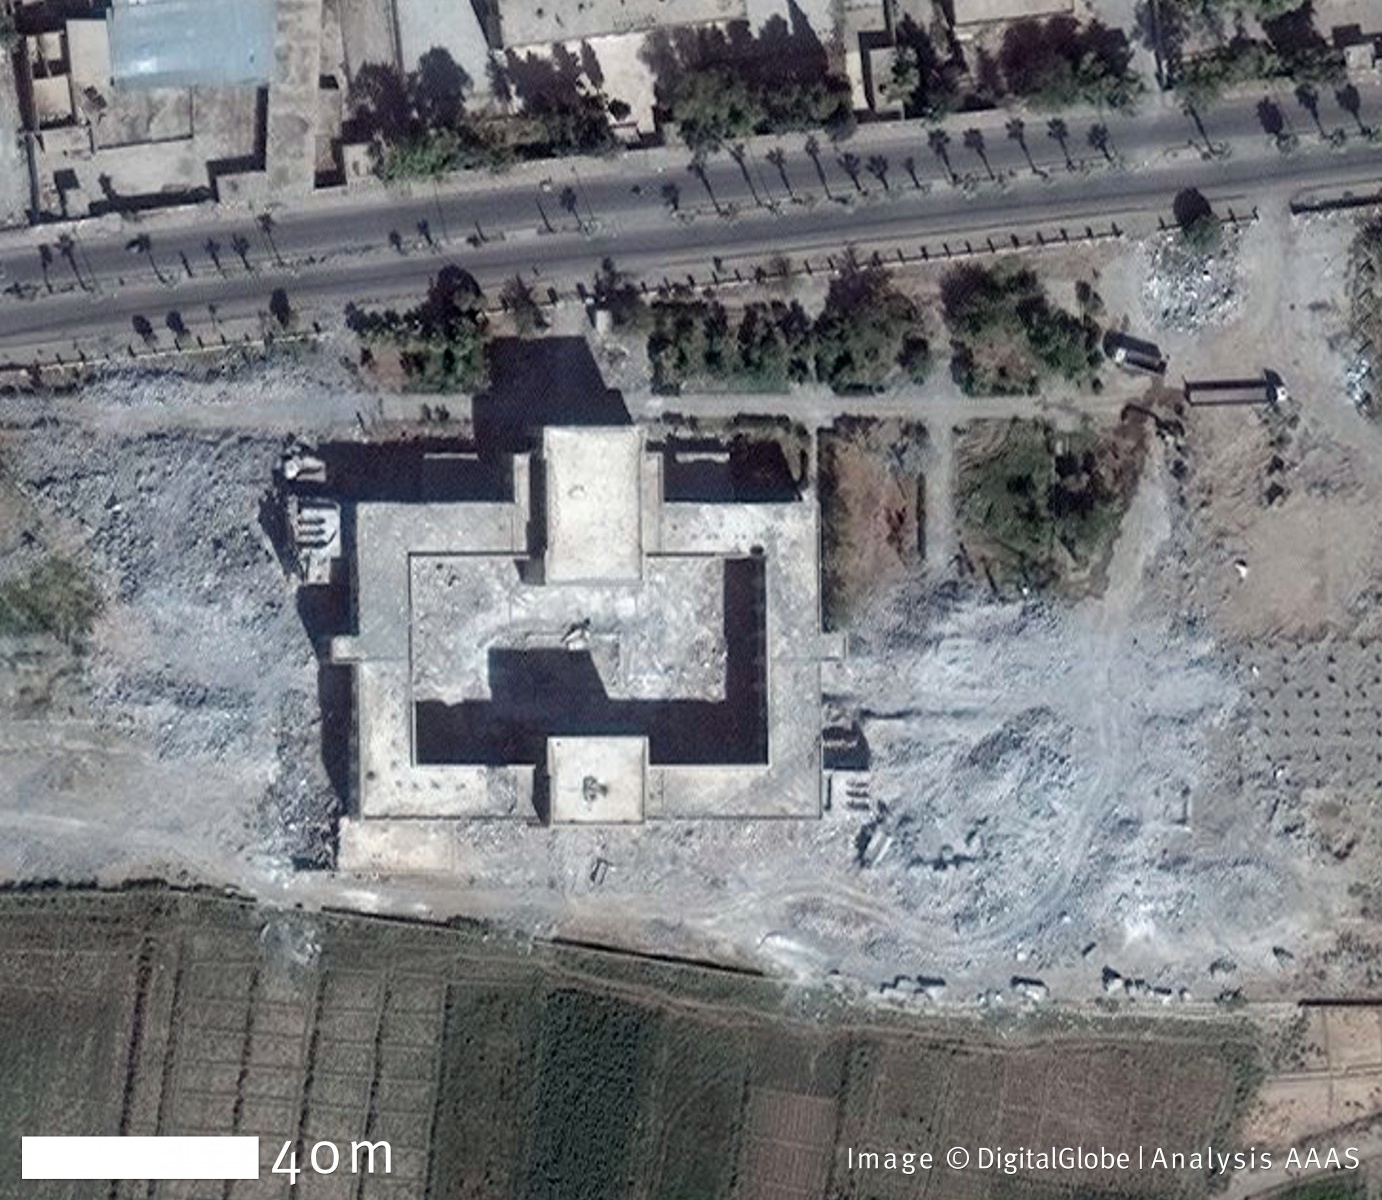 On April 8, 2011, the tombs of Uwais al-Qarani, Obay ibn Qays, and Ammar ibn Yasir, in the Syrian city of Raqqa, were undamaged. By October 6, 2014, however, all the tombs had been demolished, while leaving the roof of the central mosque intact. Damage to the building's interior decorative flooring is visible. Coordinates: 35.94 N, 39.02 E. Image ©DigitalGlobe | U.S. Department of State, NextView License | Analysis AAAS